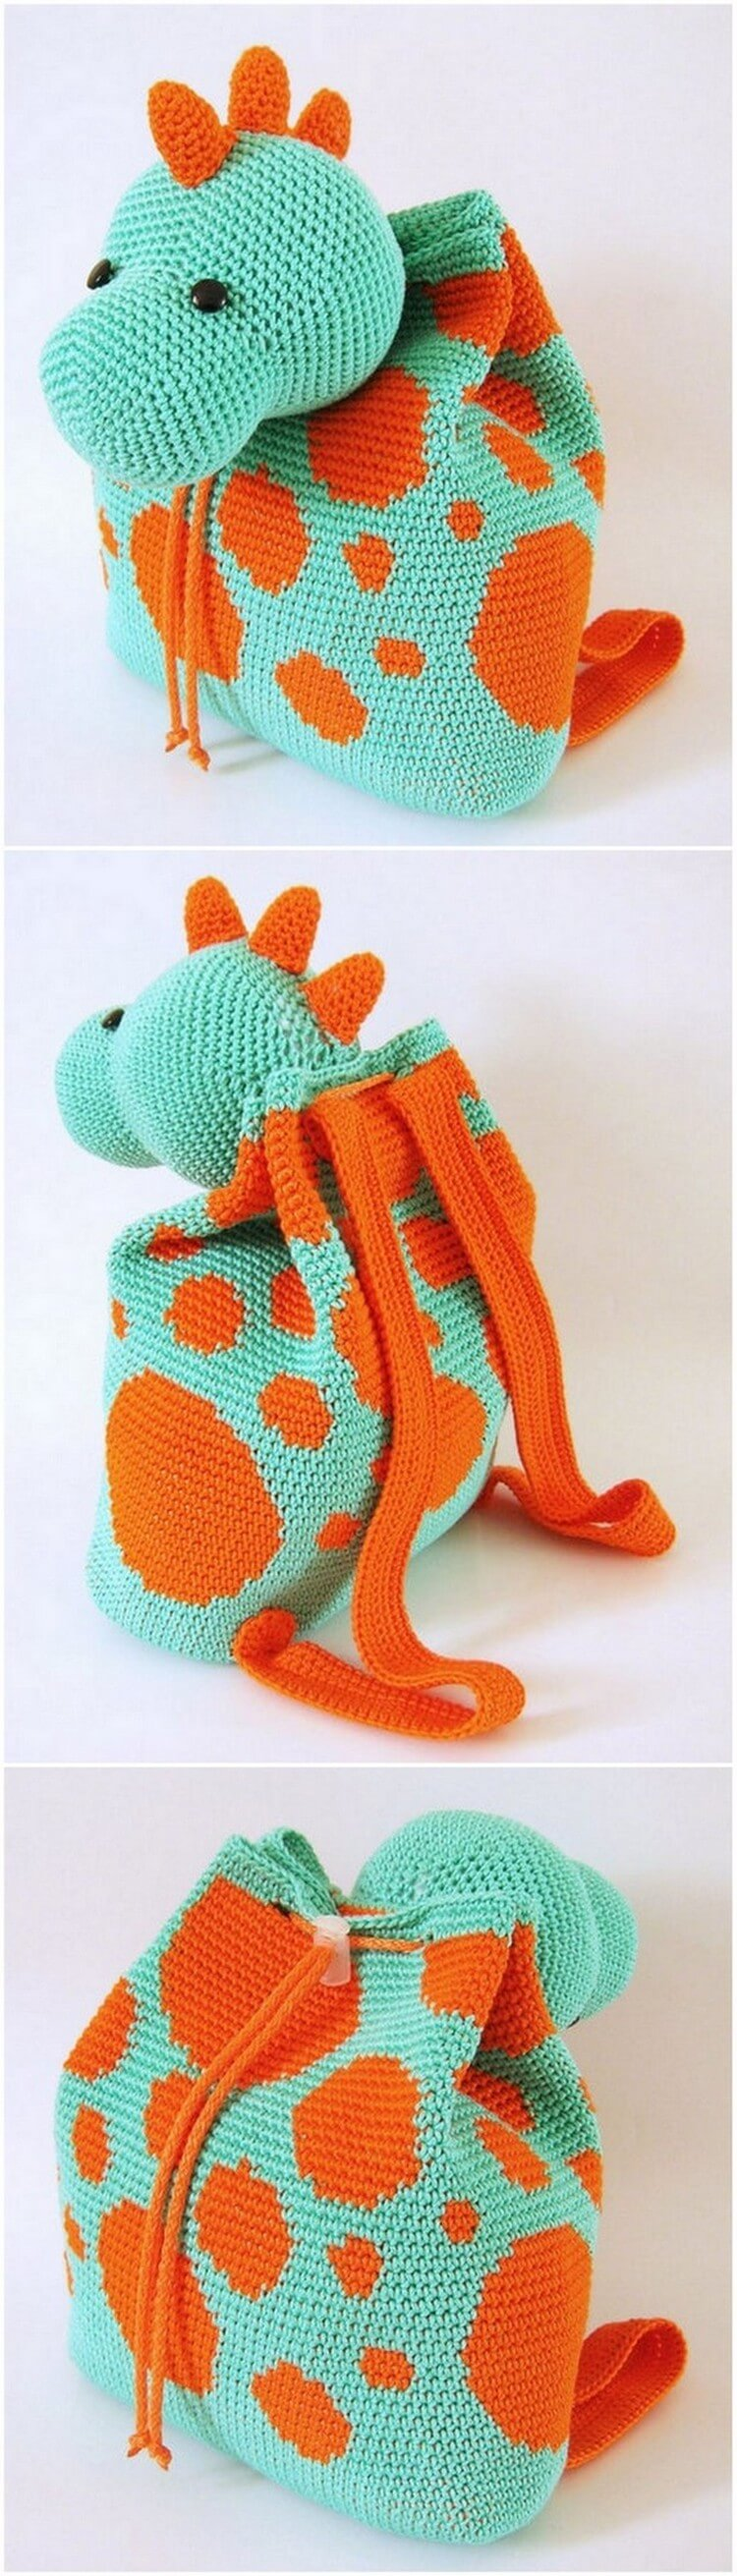 Crochet Backpack Pattern (78)